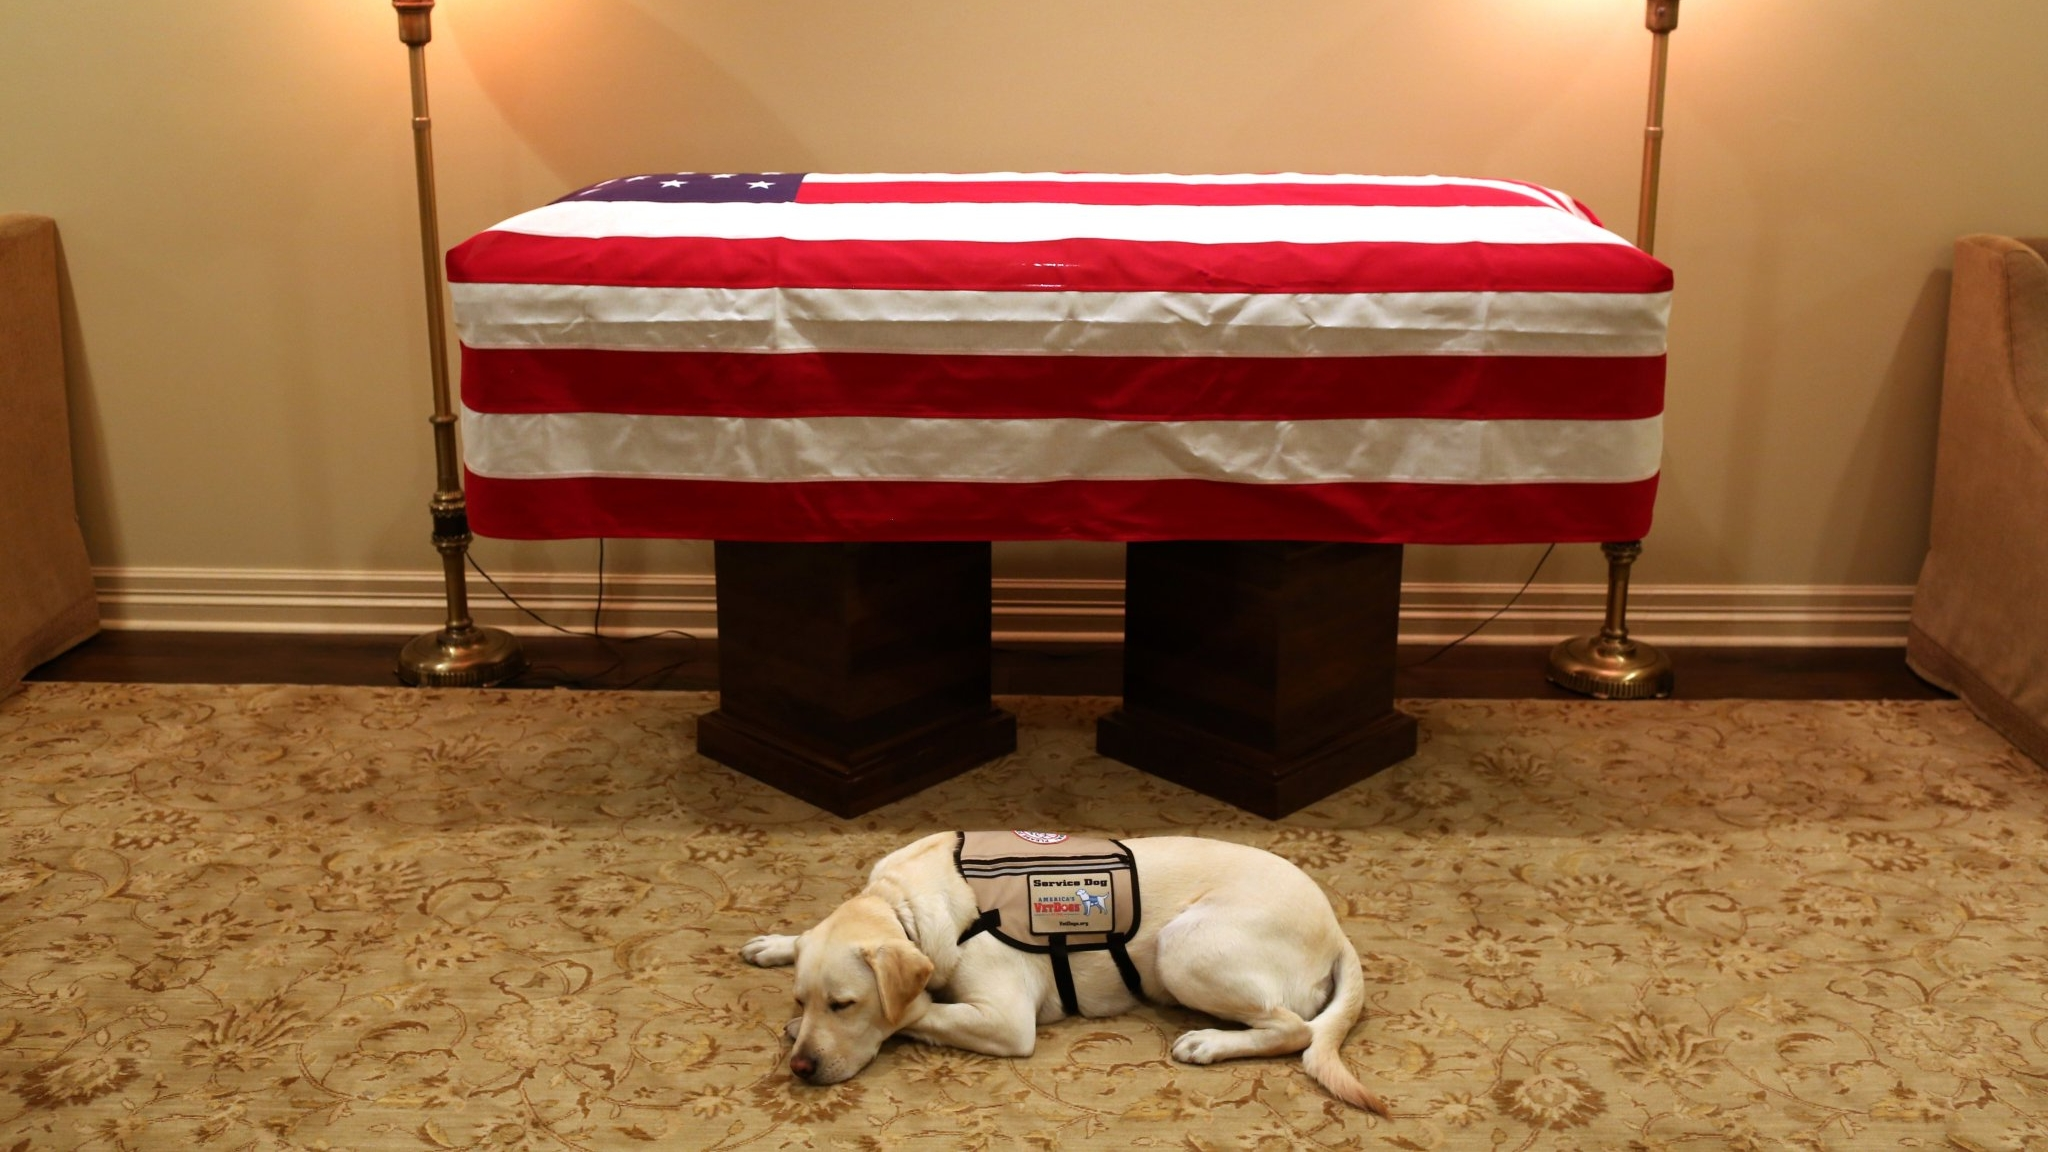 Sully, a therapy dog, is seen before the casket of George H.W. Bush. The dog accompanied Bush aboard a flight to Washington, DC, for memorial services. He will return to Walter Reed Medical Center to help the veterans that need him. (Source: Jim McGrath/Twitter)